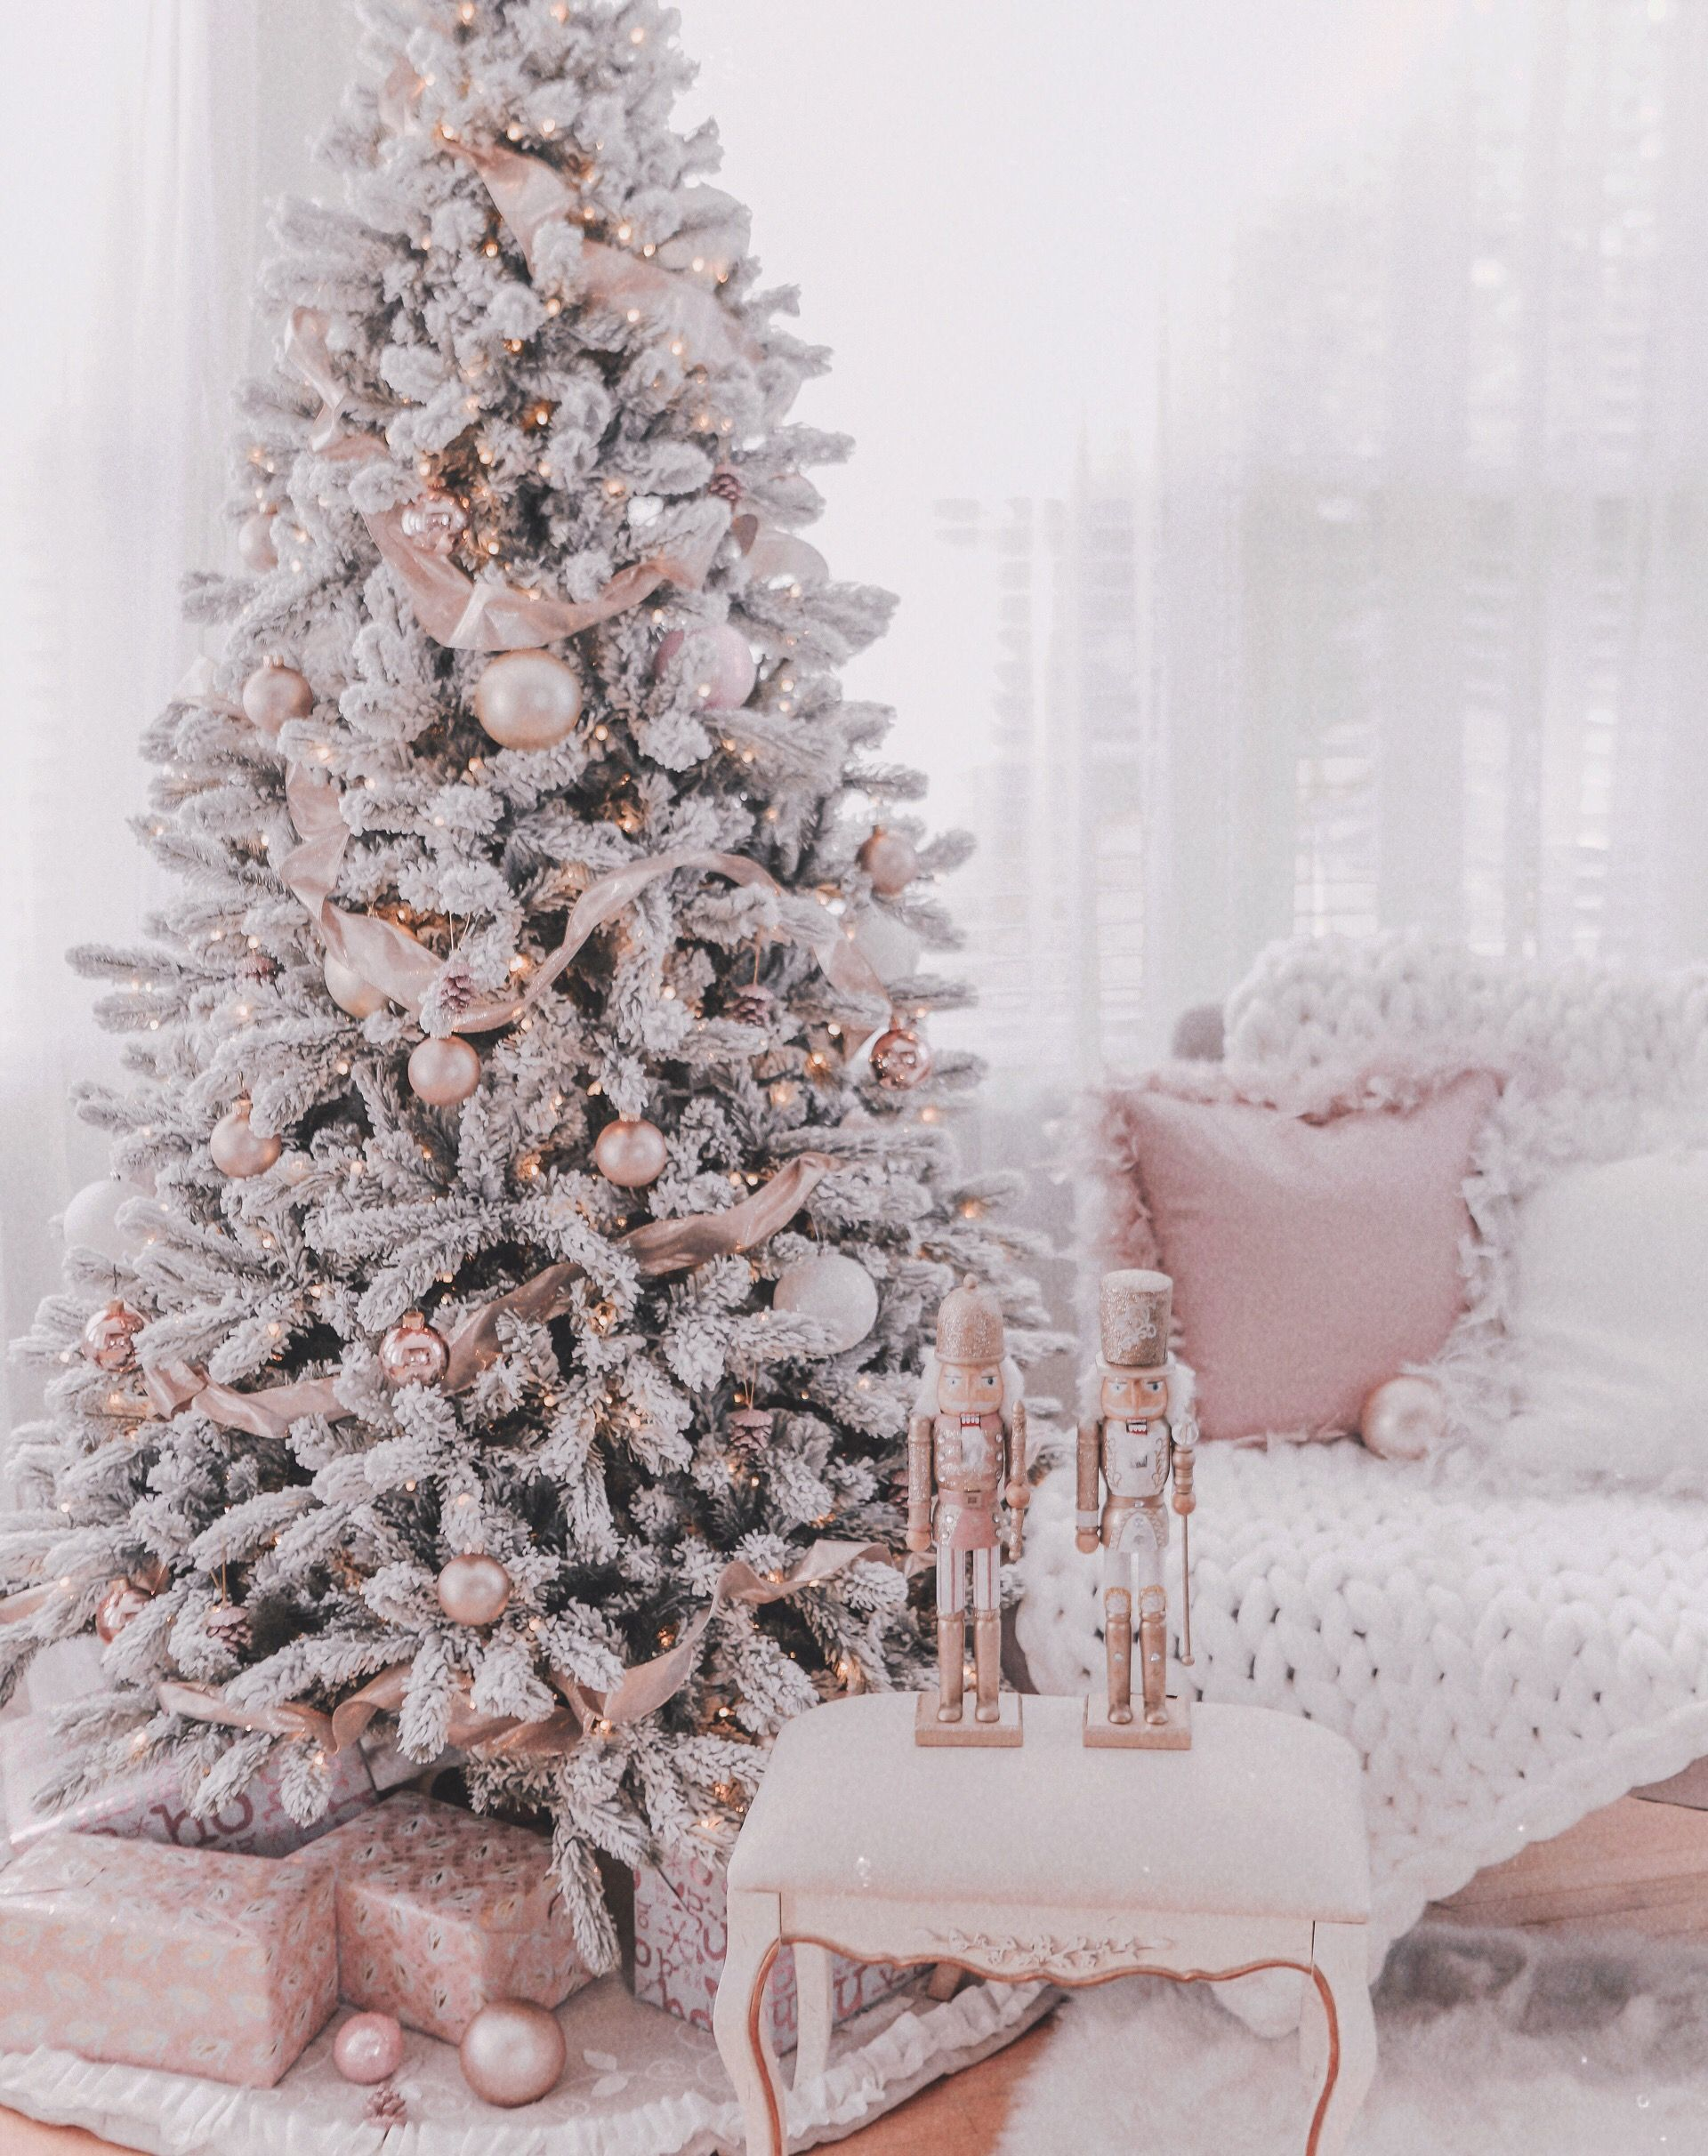 Couture Rose Gold & Blush Christmas Tree Decoration Details images